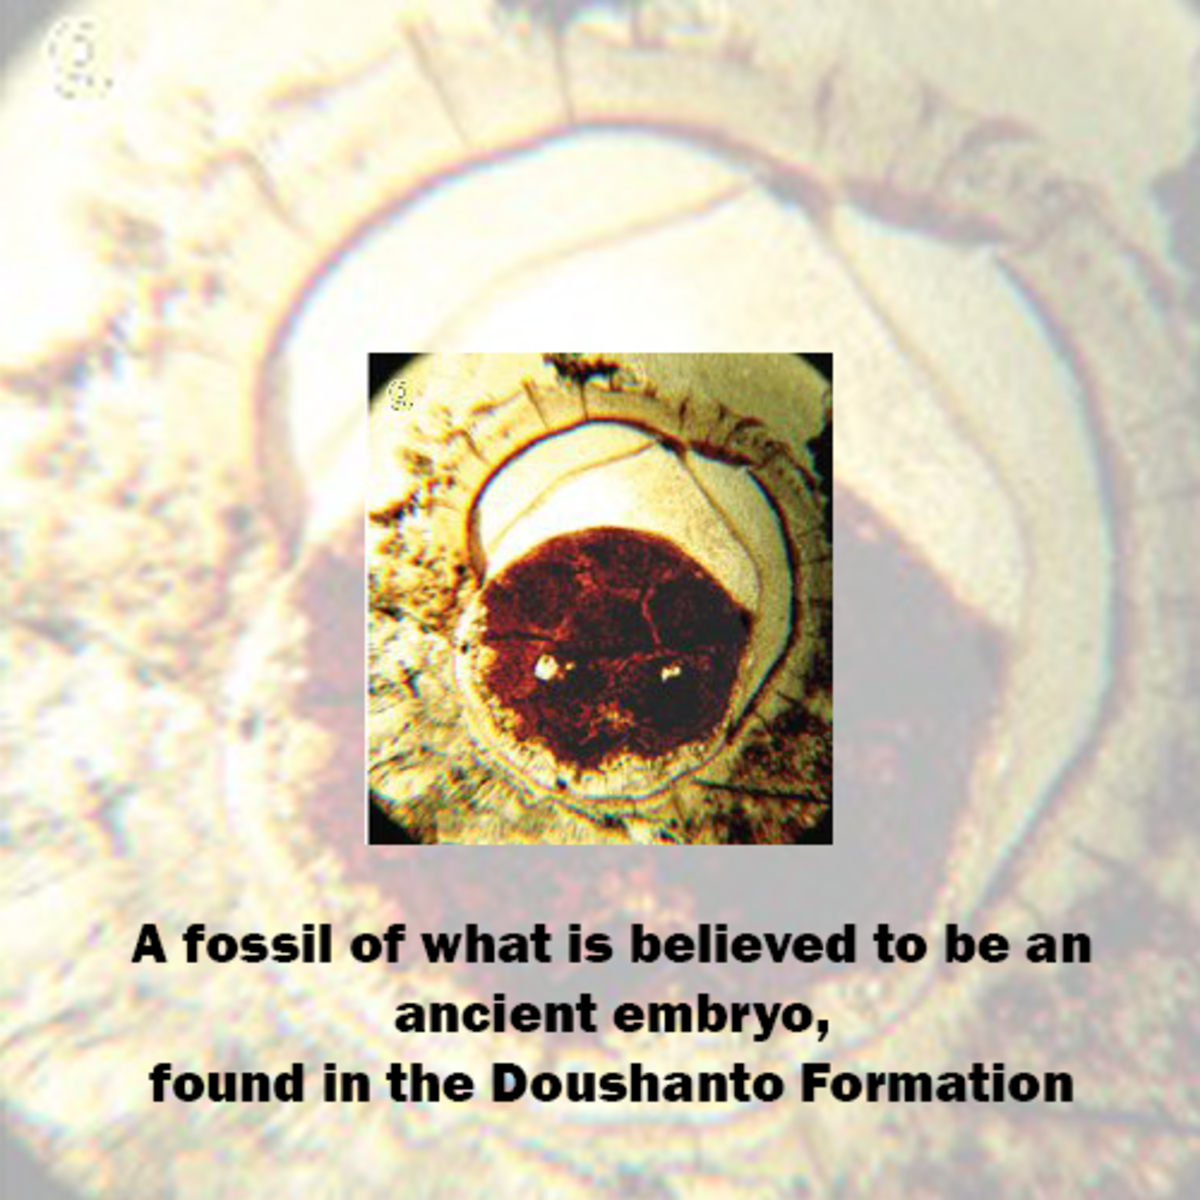 Ancient embryo found in the Doushanto Formation.